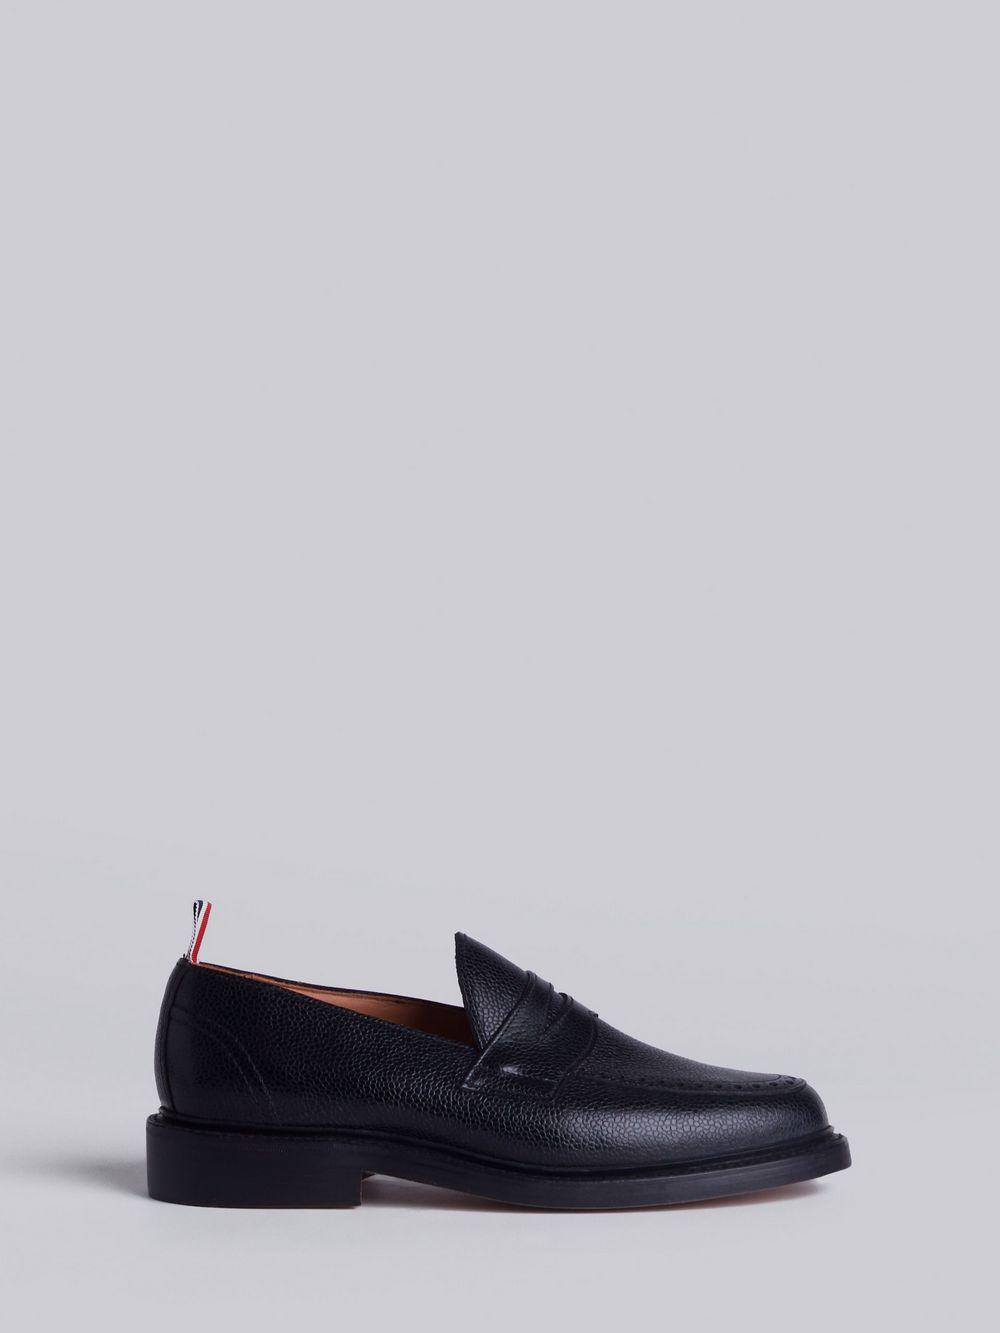 71910cd9b6f Thom Browne - Penny Loafer With Leather Sole In Black Pebble Grain for Men  - Lyst. View fullscreen